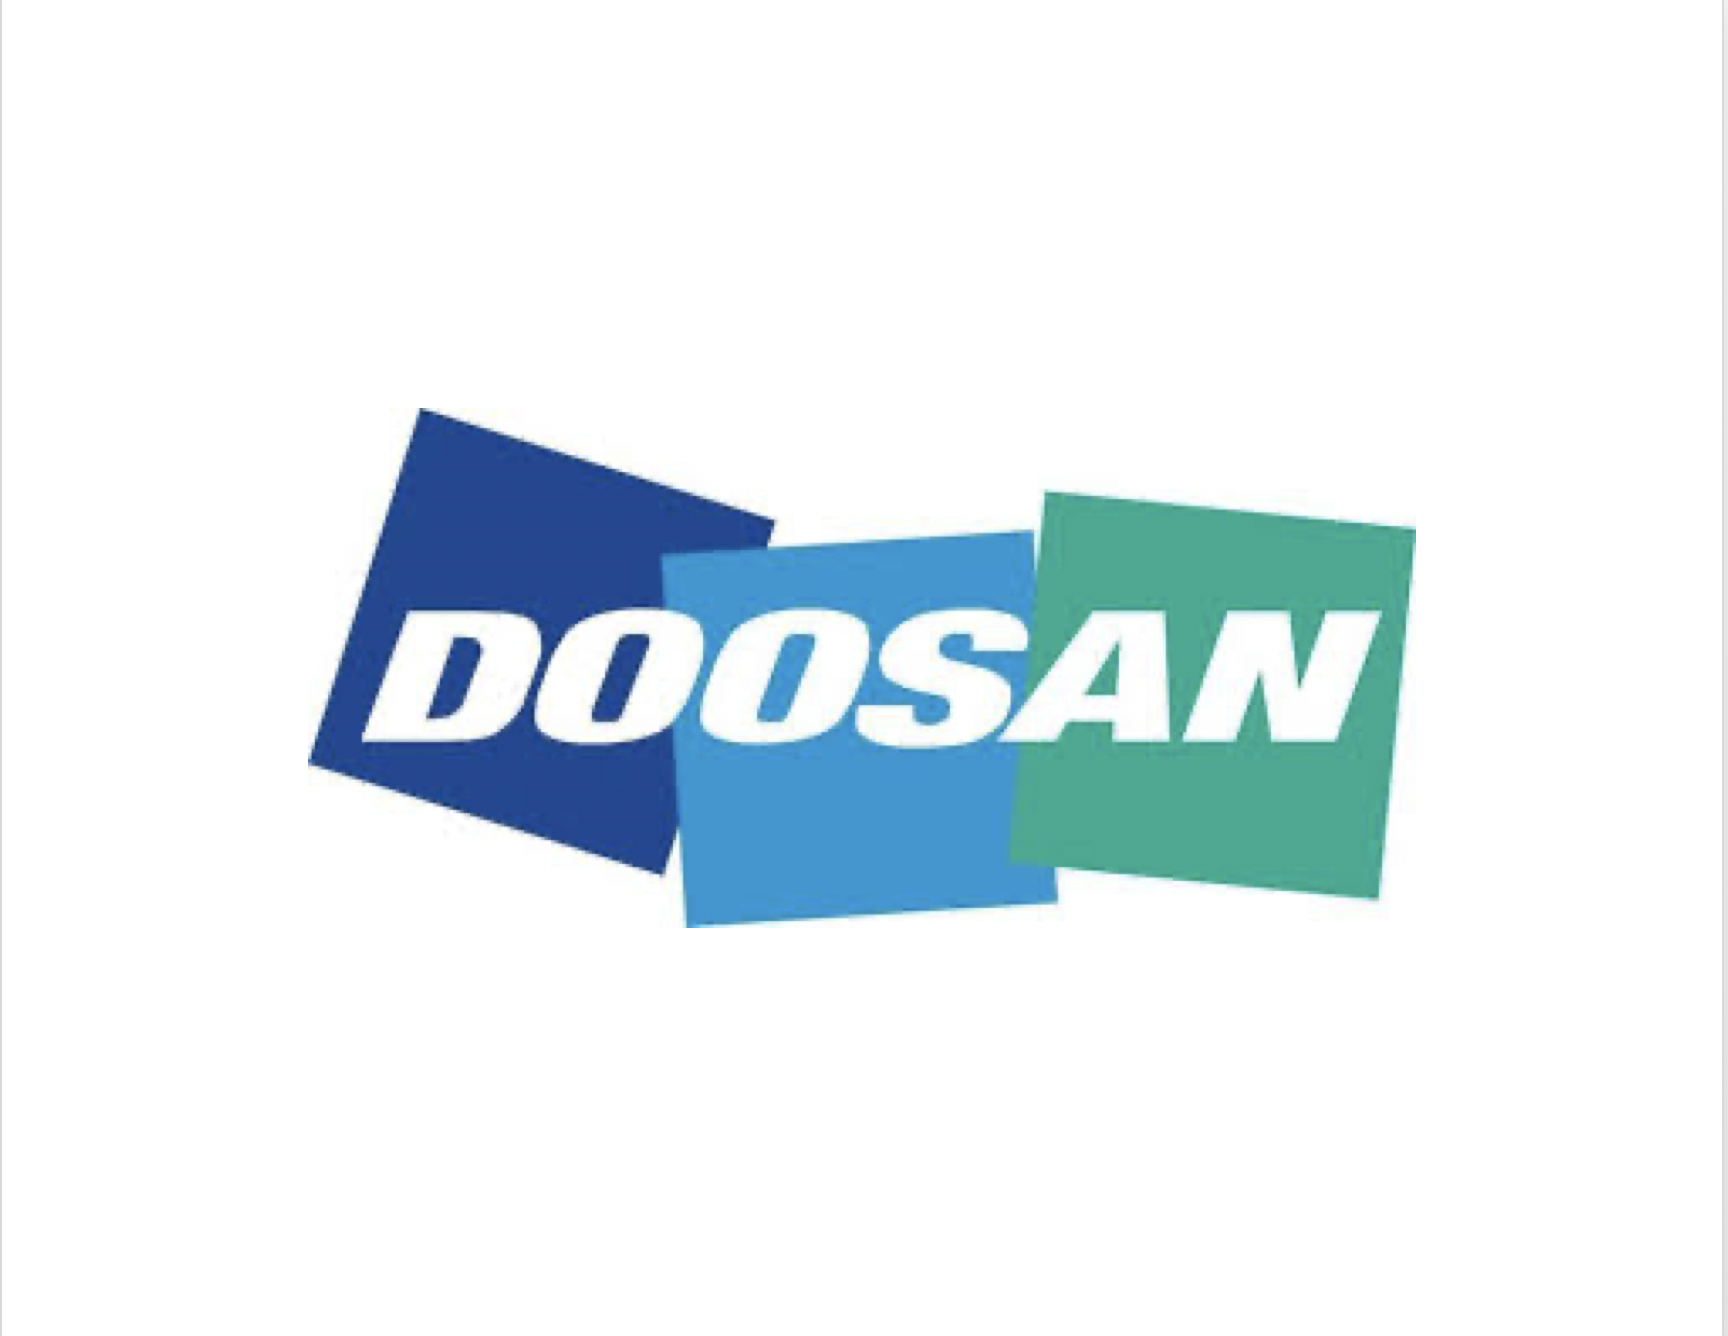 South Korea: Doosan Fuel Cell partners Navig8 to jointly develop fuel cells to power ships